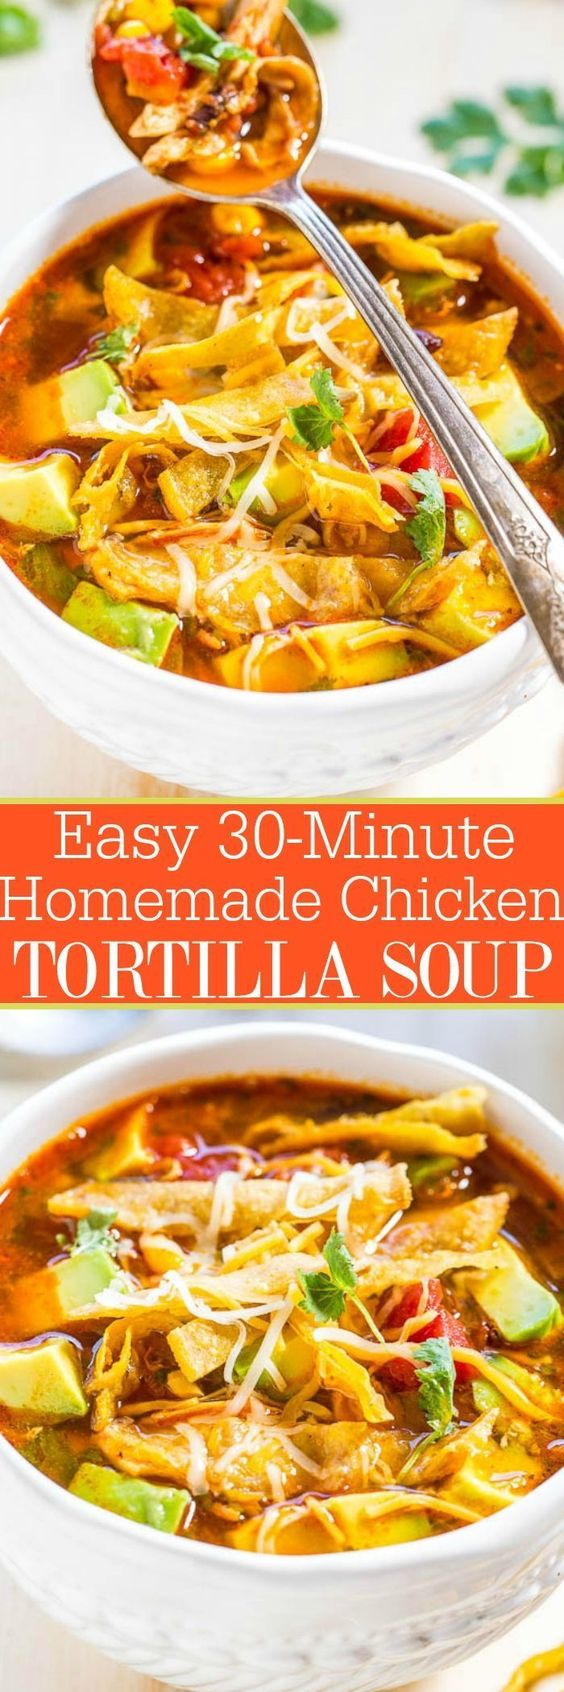 Easy 30-Minute Homemade Chicken Tortilla Soup Recipe via Averie Cooks - Chicken, tomatoes, corn, black beans, avocado, cheese, and addictively crunchy tortilla strips! Fast, easy weeknight meal, and better than from a restaurant!! - The BEST 30 Minute Meals Recipes - Easy, Quick and Delicious Family Friendly Lunch and Dinner Ideas #30minutemeals #30minutedinners #thirtyminutedinners #30minuterecipes #fastrecipes #easyrecipes #quickrecipes #mealprep